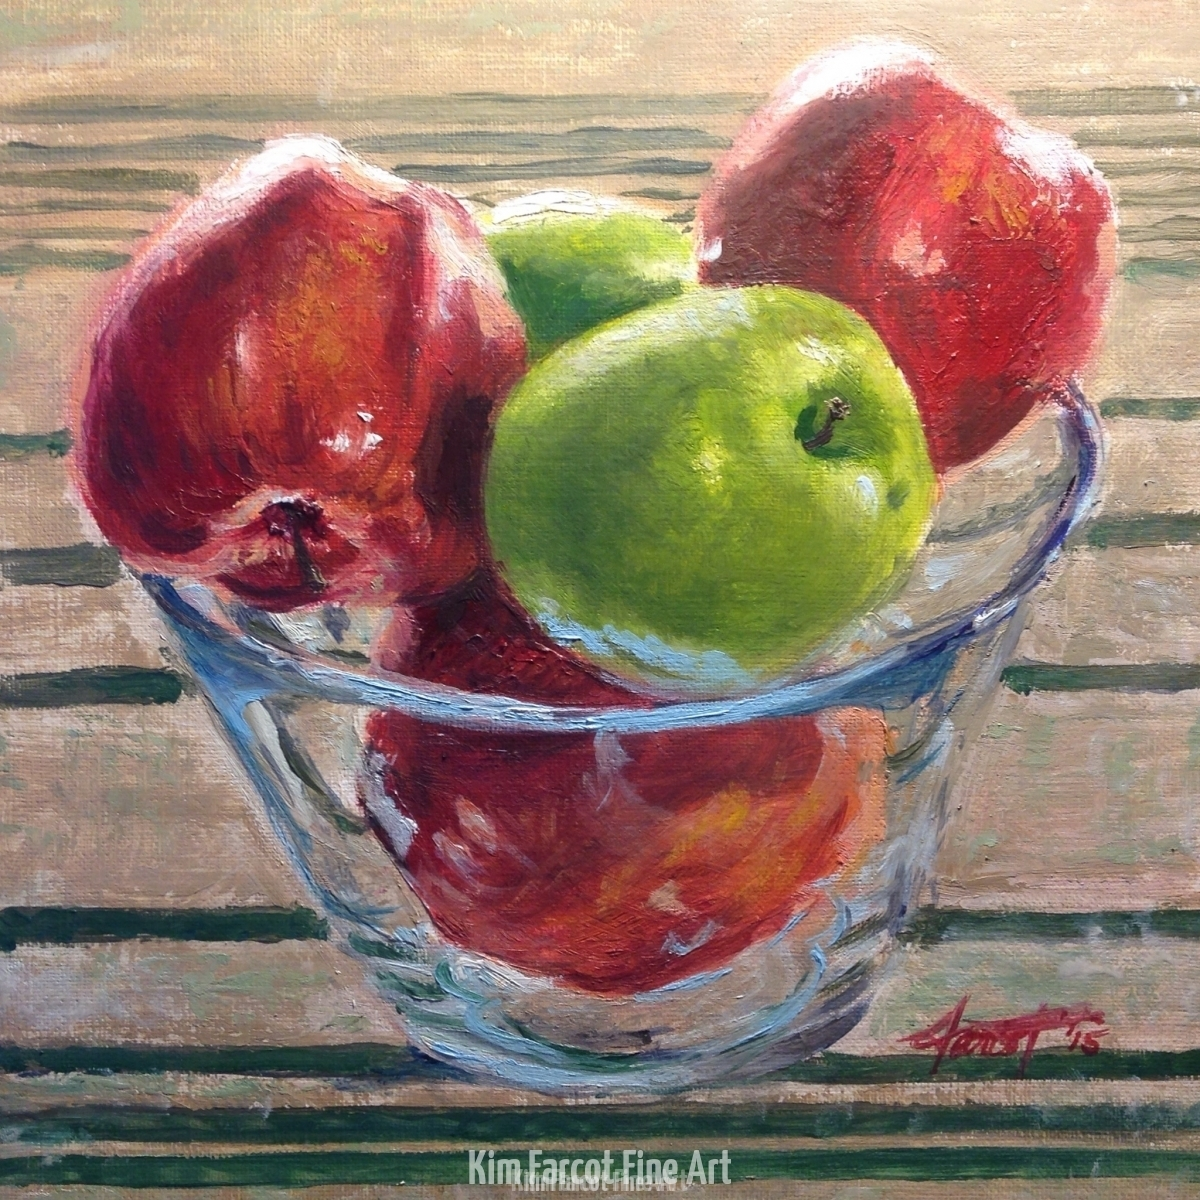 Apples, private collection Colorado